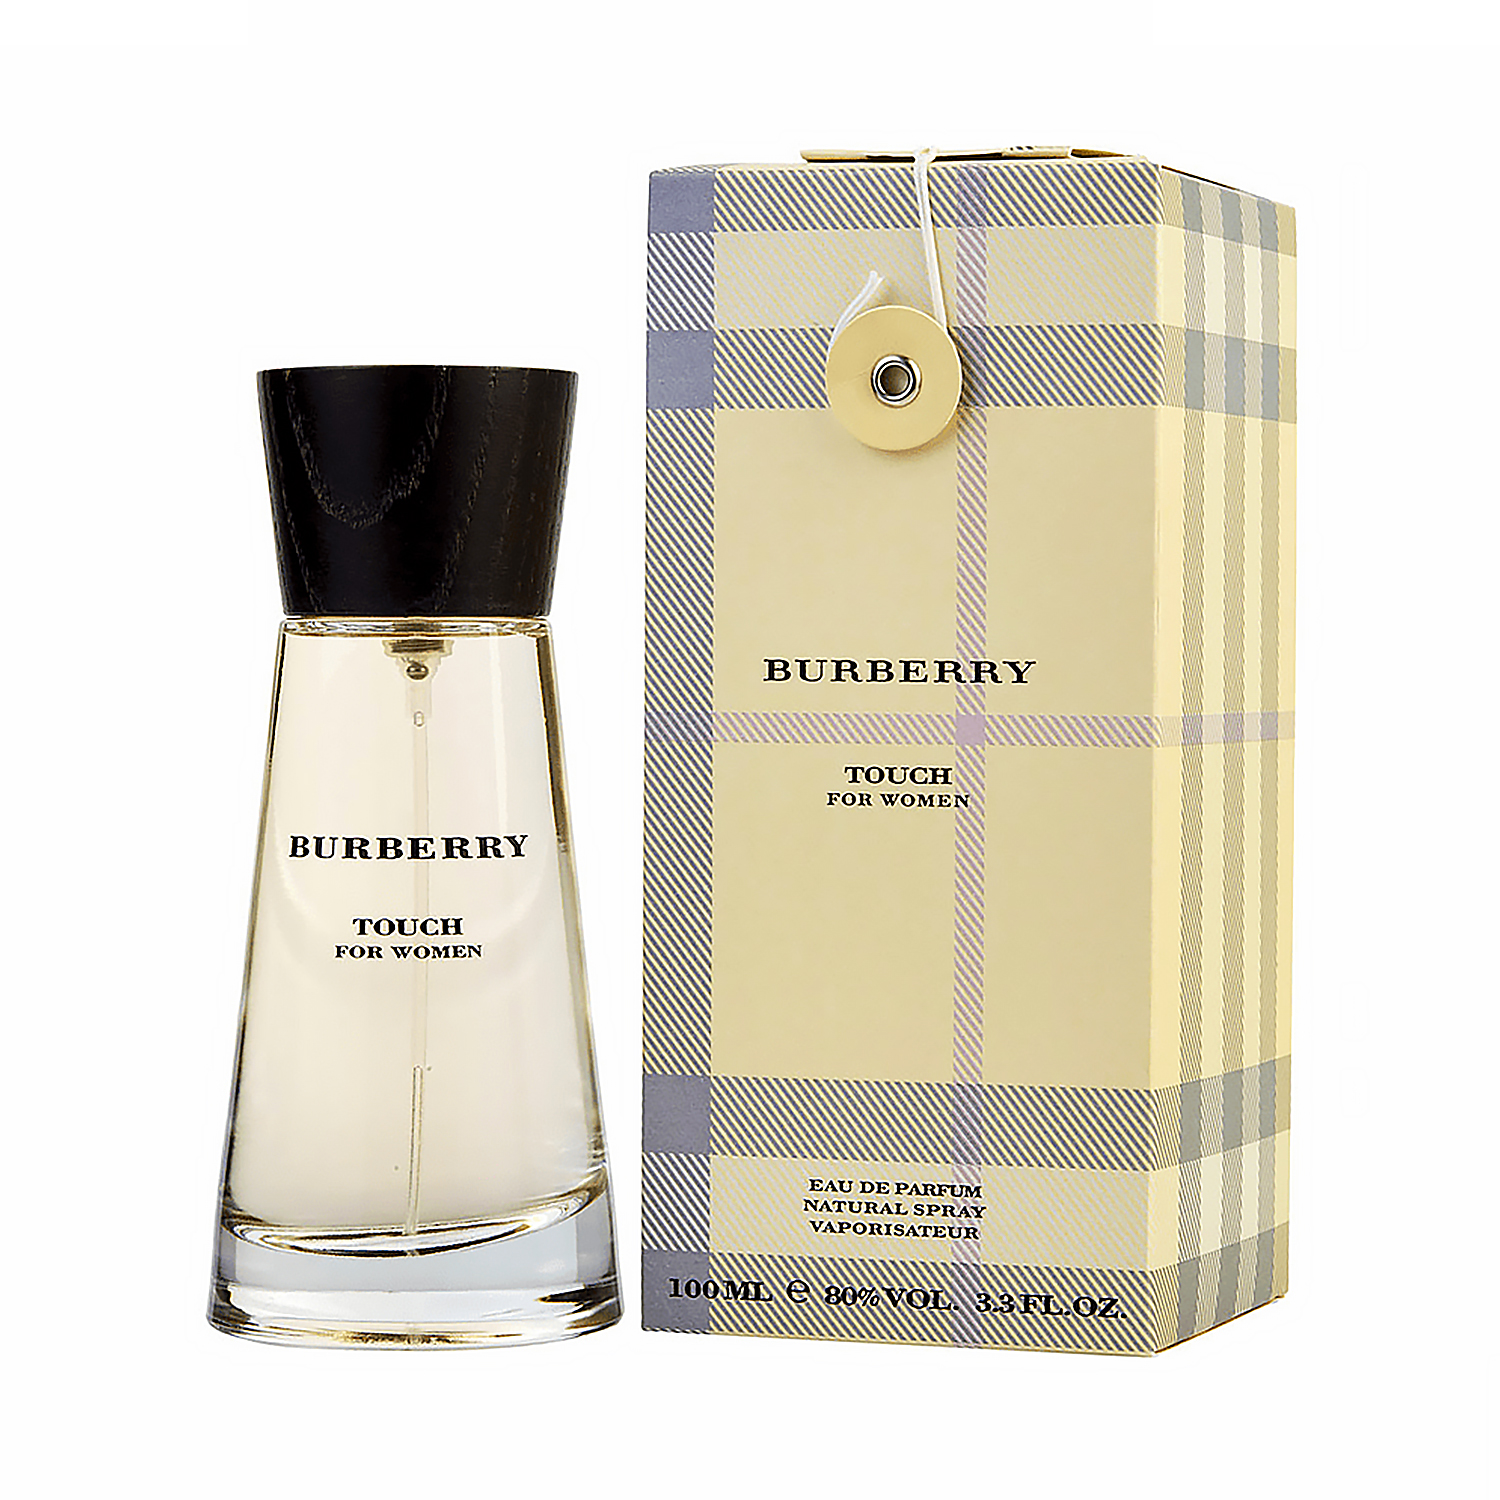 Touch by burberry For Women EDT: Anniversary Gifts to Ras Al Khaimah